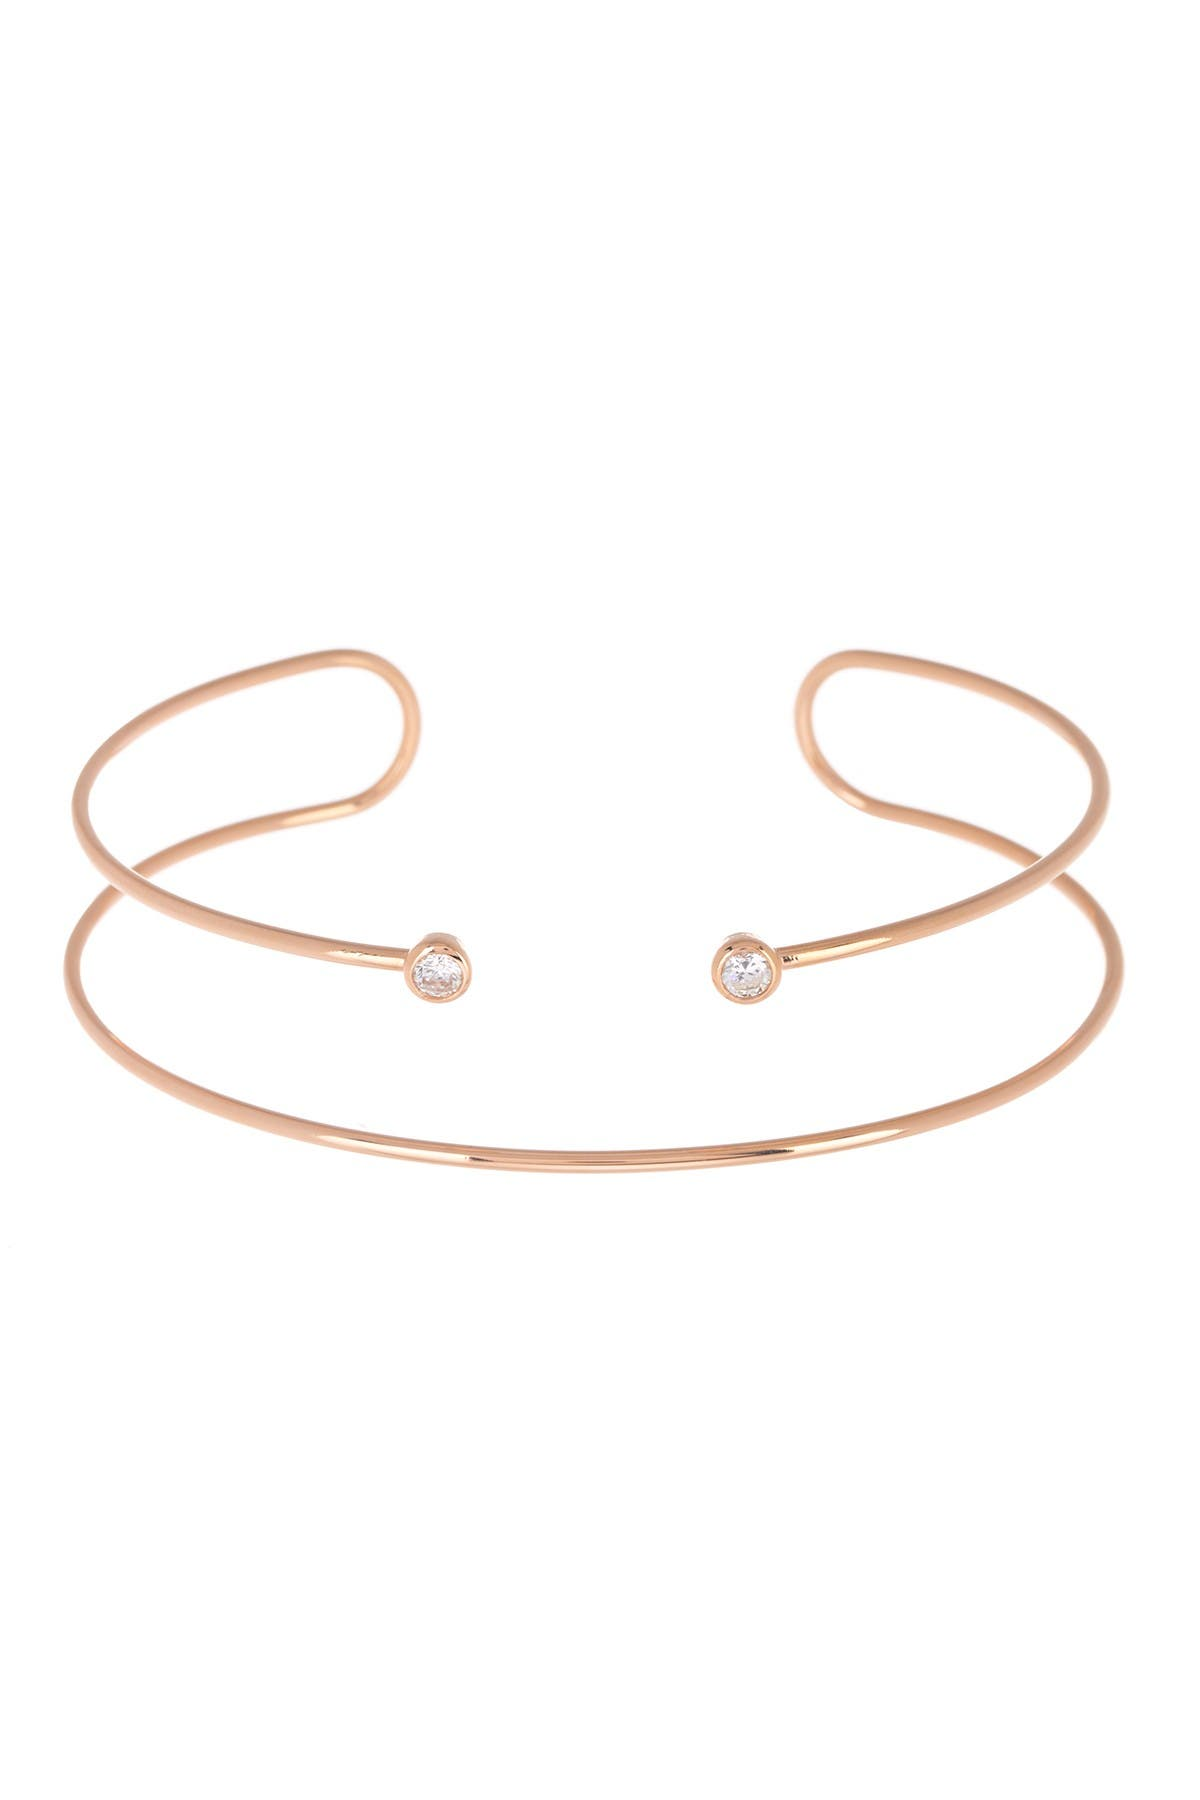 Image of Argento Vivo Rose Gold Plated Sterling Silver CZ Wire Cuff